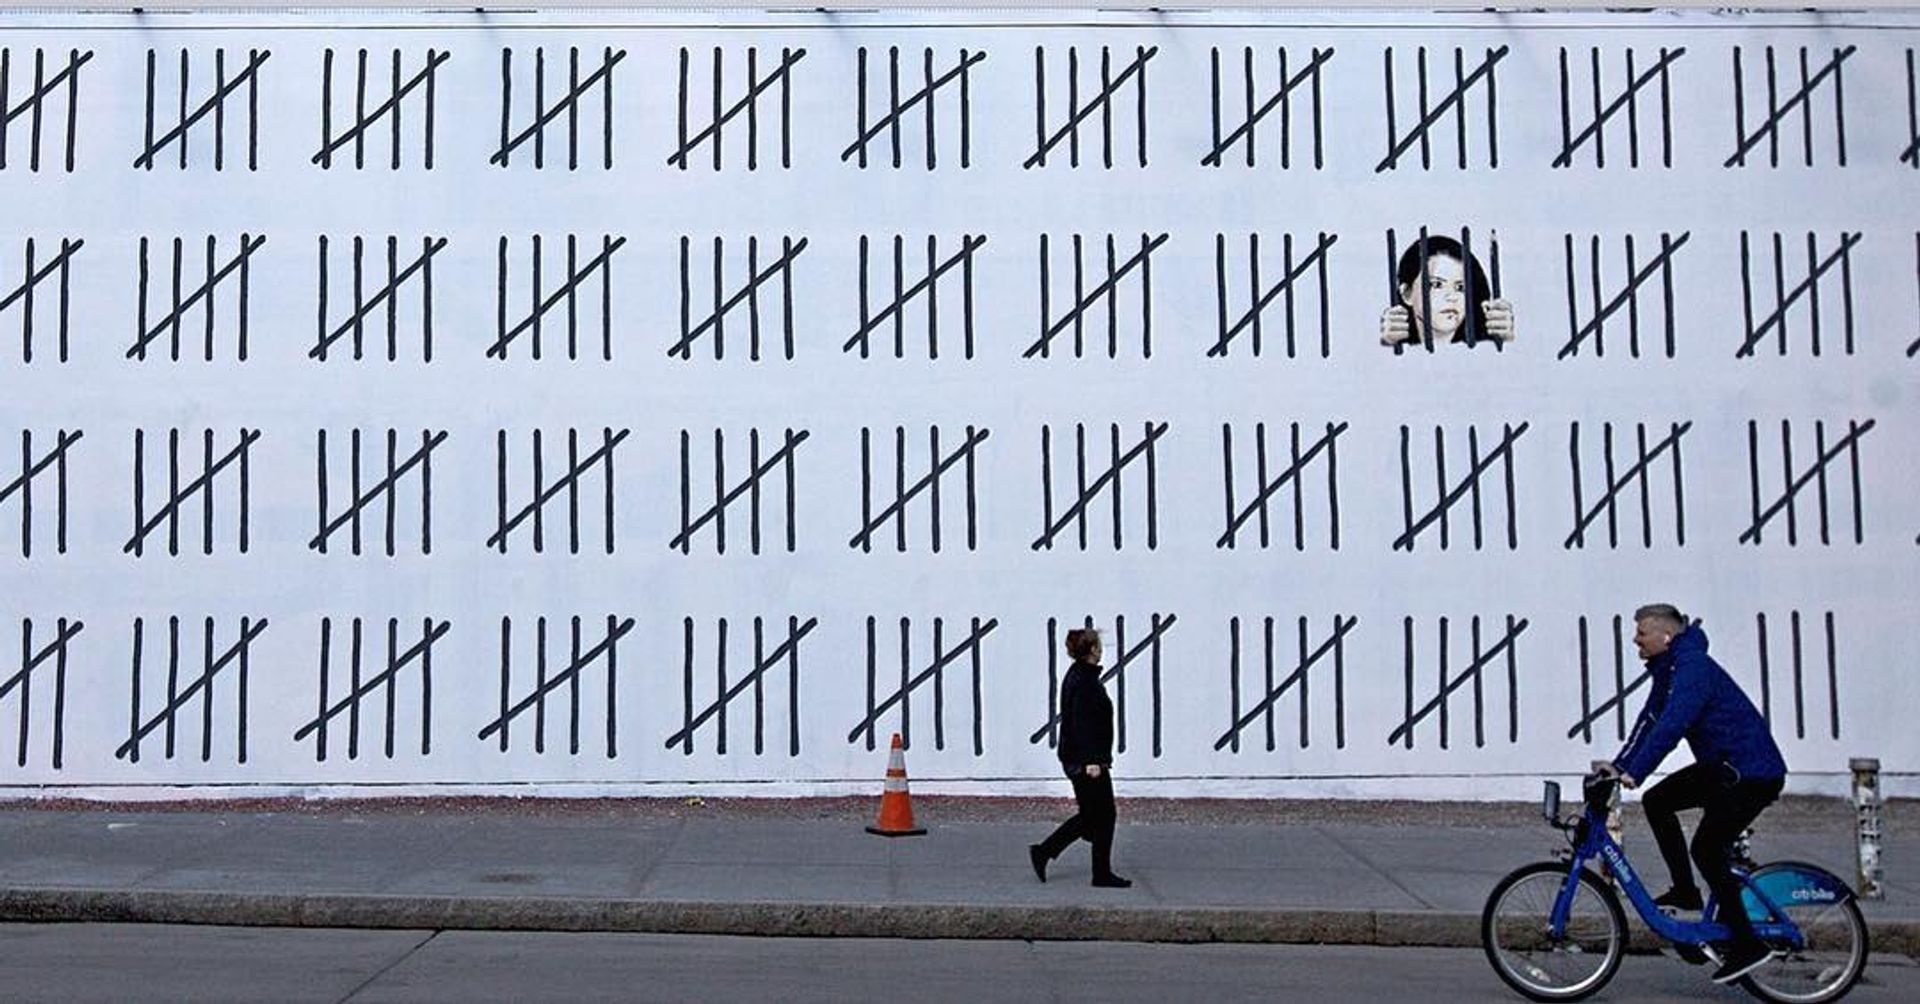 The first Banksy mural to be noticed, and certainly the largest thus far, is a 70-foot mural at the corner of Houston Street and Bowery that protests the imprisonment of the ethnic Kurdish artist and journalist, Zehra Dogan